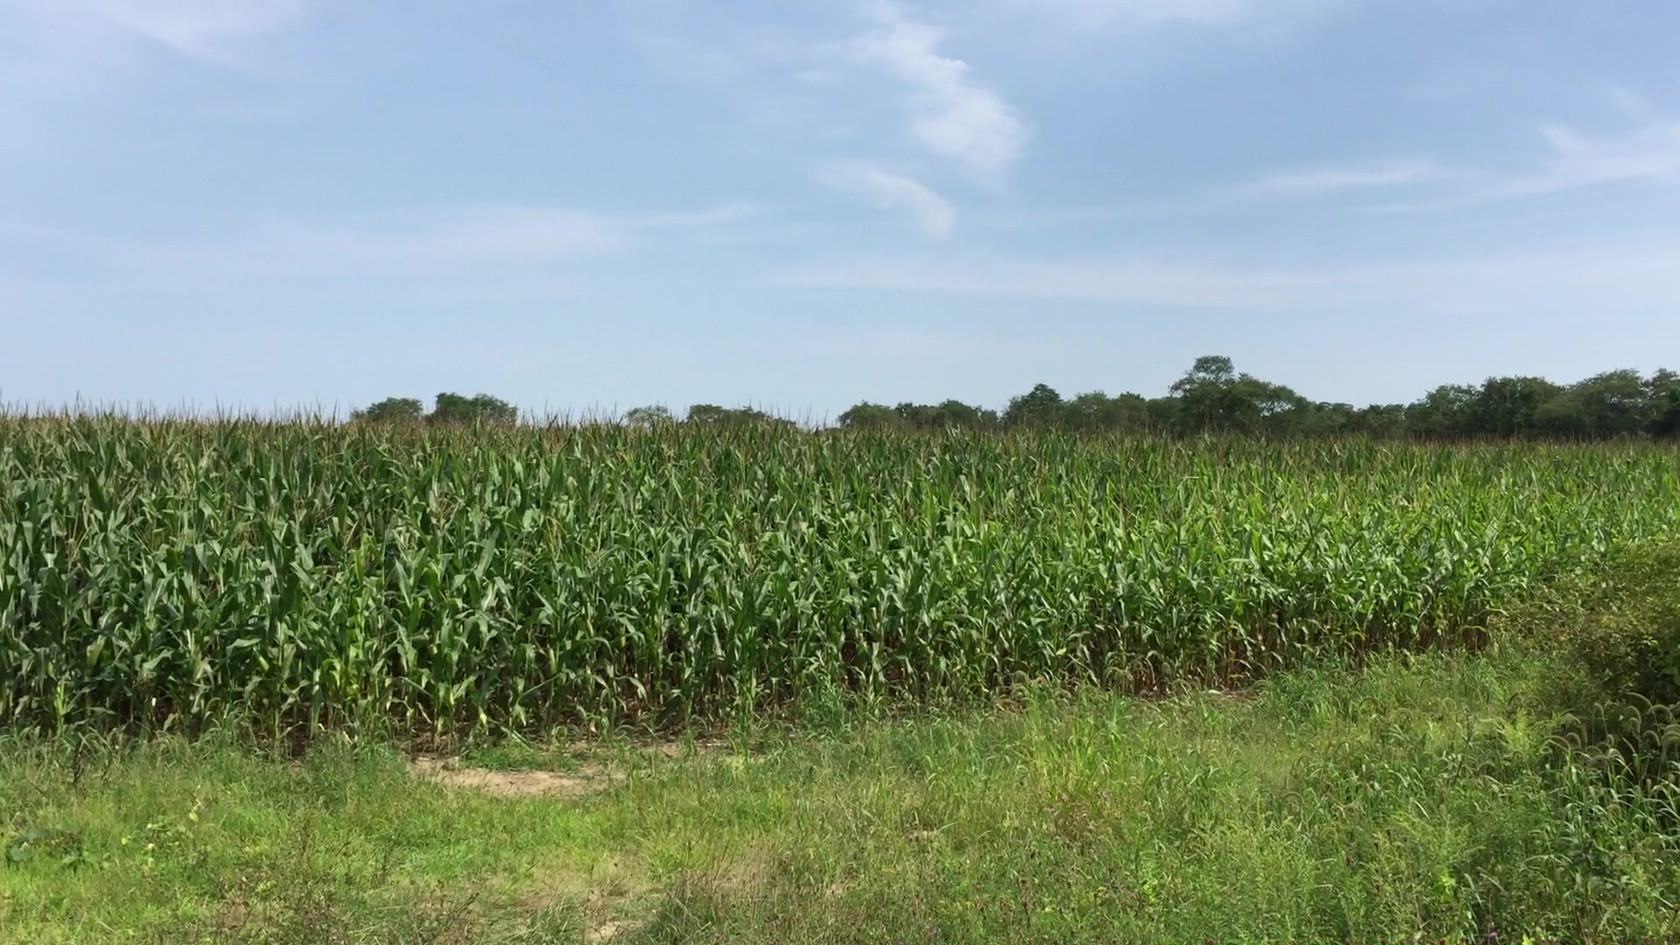 Looking Out Over the Cornfield